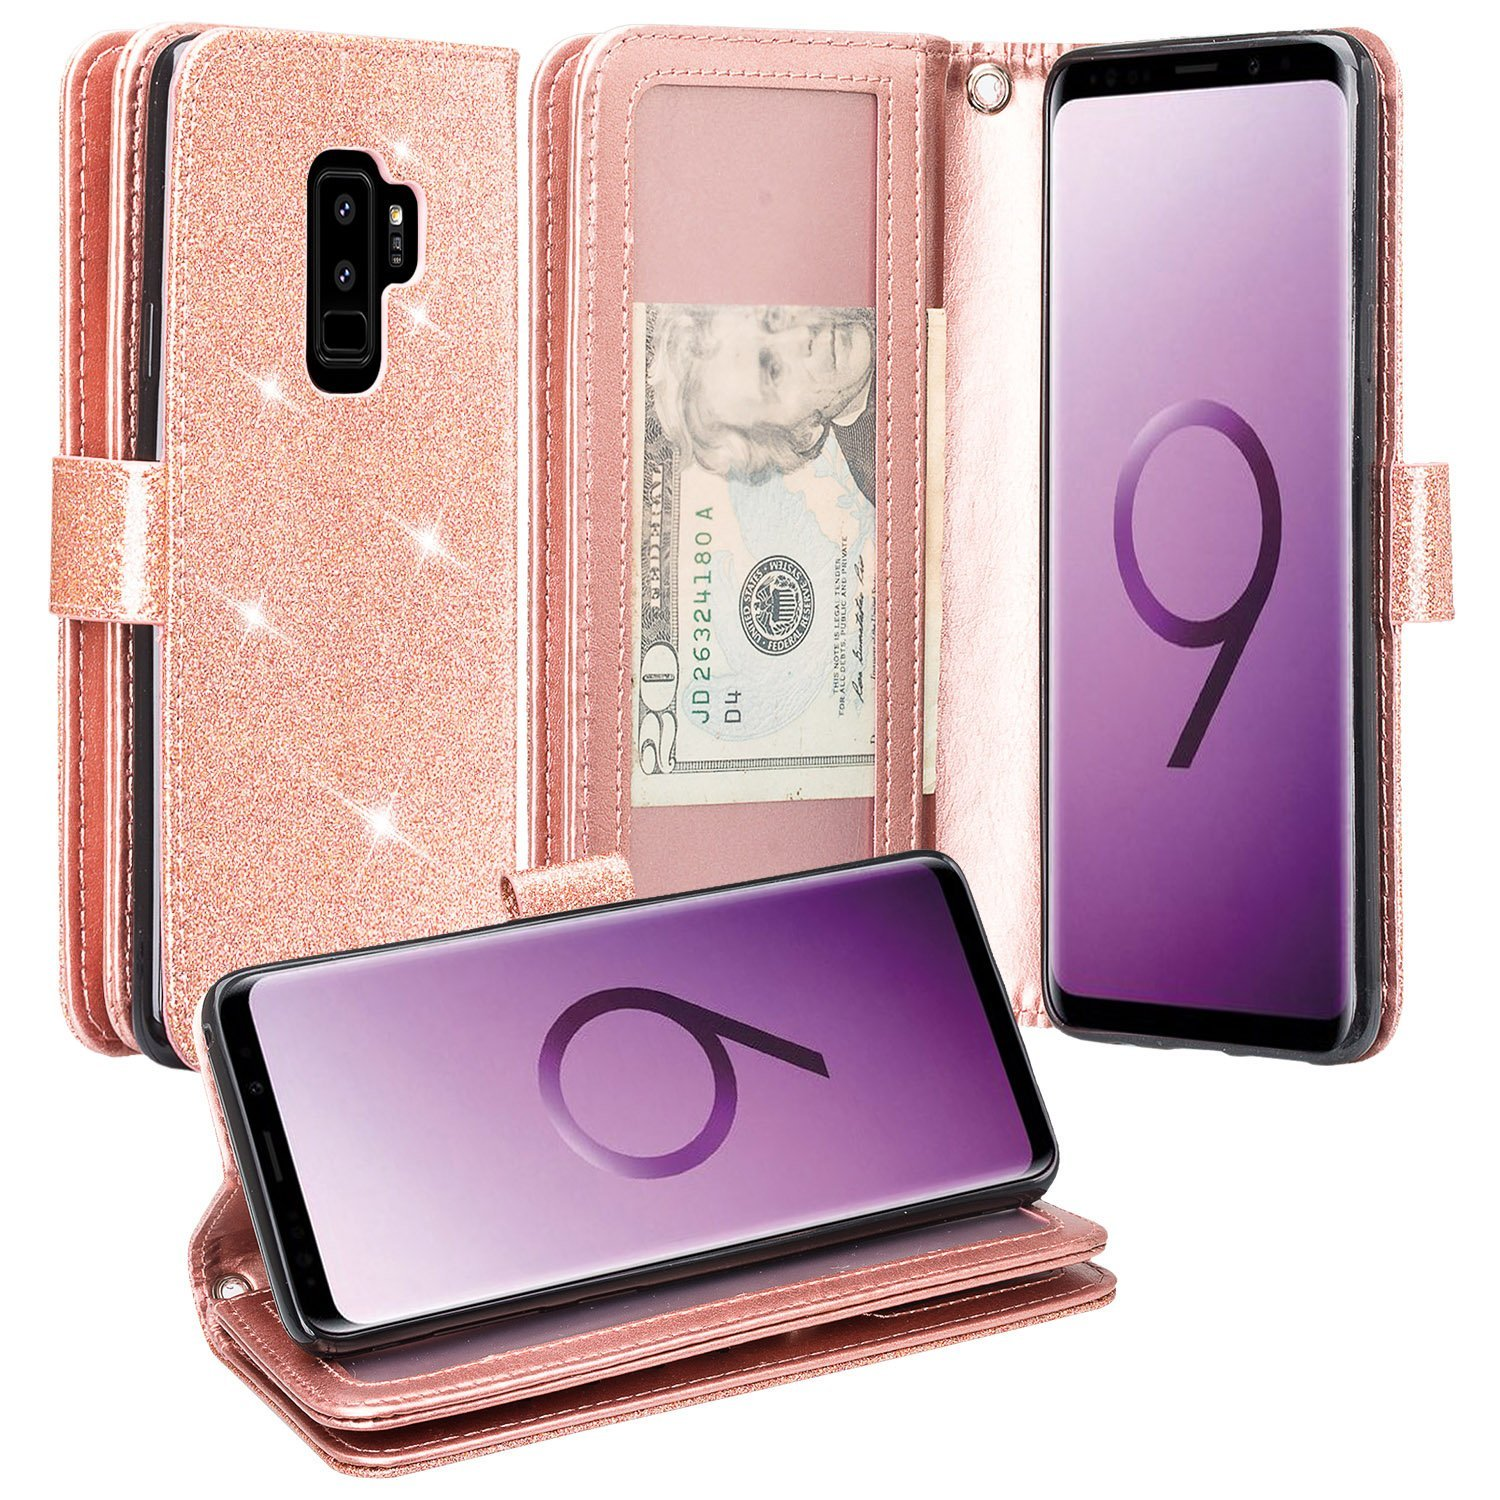 Samsung Galaxy S9+, S9 Plus Case w/ HD Screen Protector, Slim Luxury Bling  Faux Leather Magnetic Flip Kickstand Wallet Cover Shockproof Cover (Rose